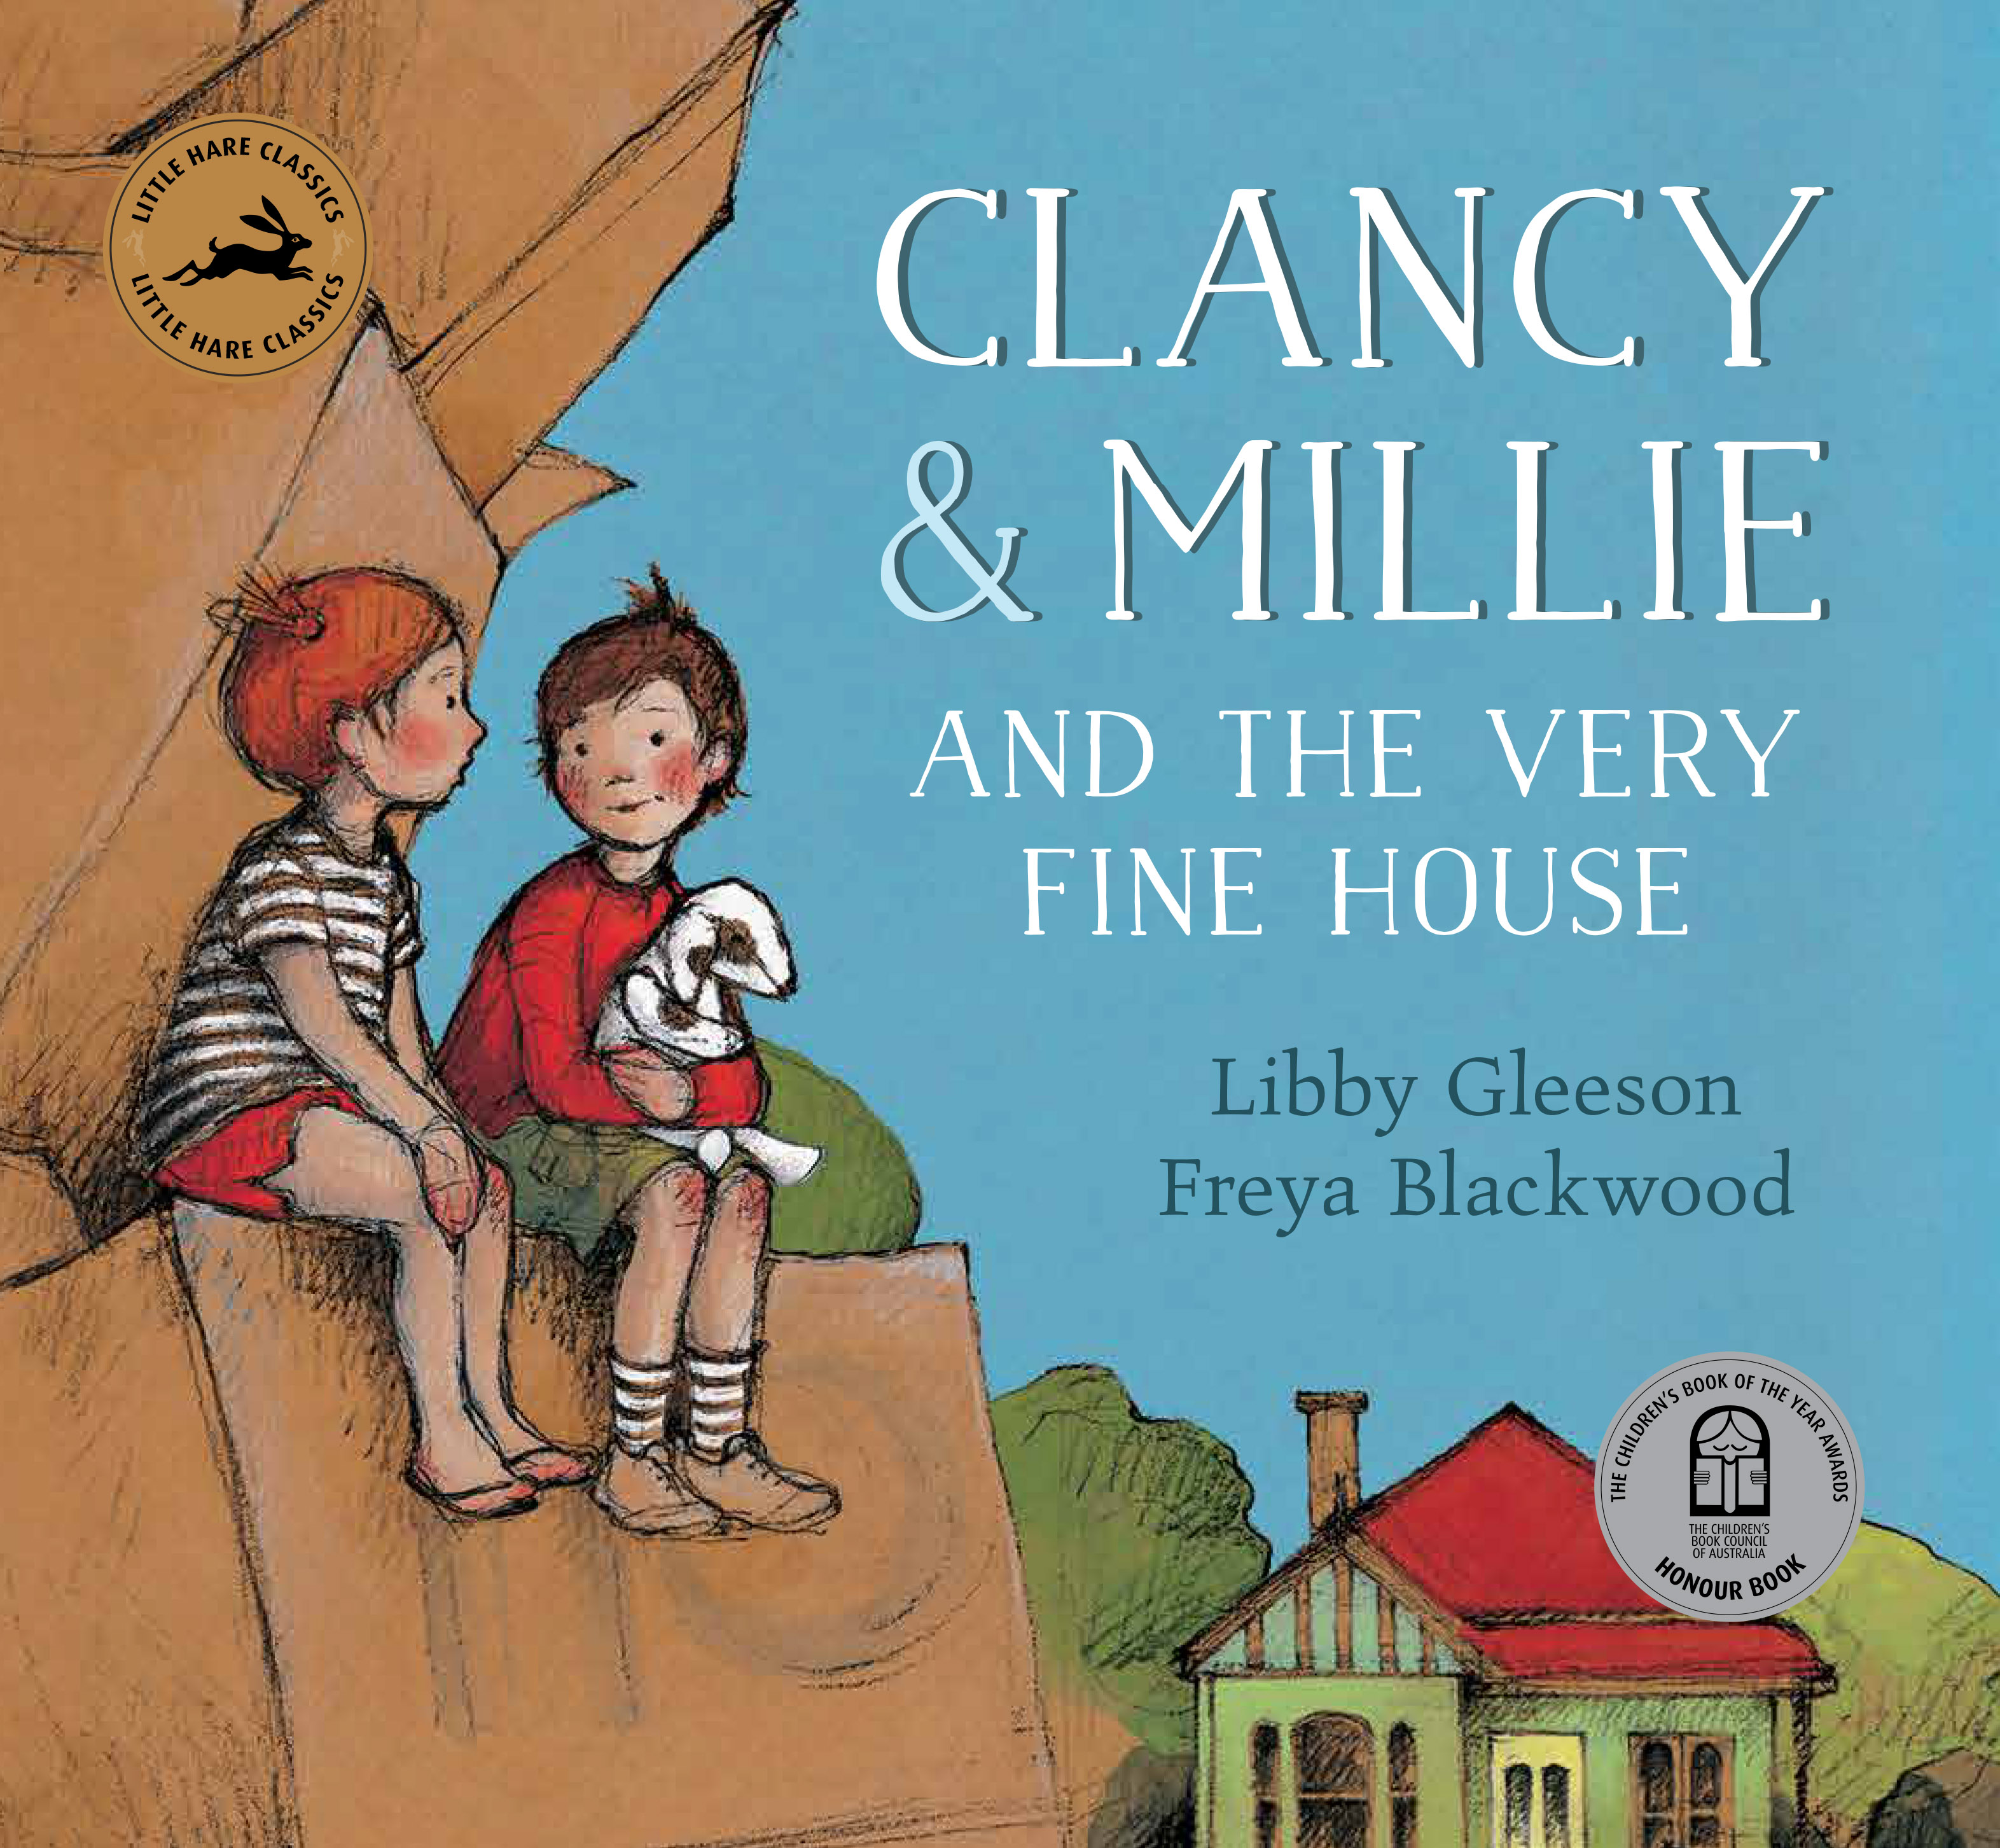 Clancy and Millie and the Very Fine House